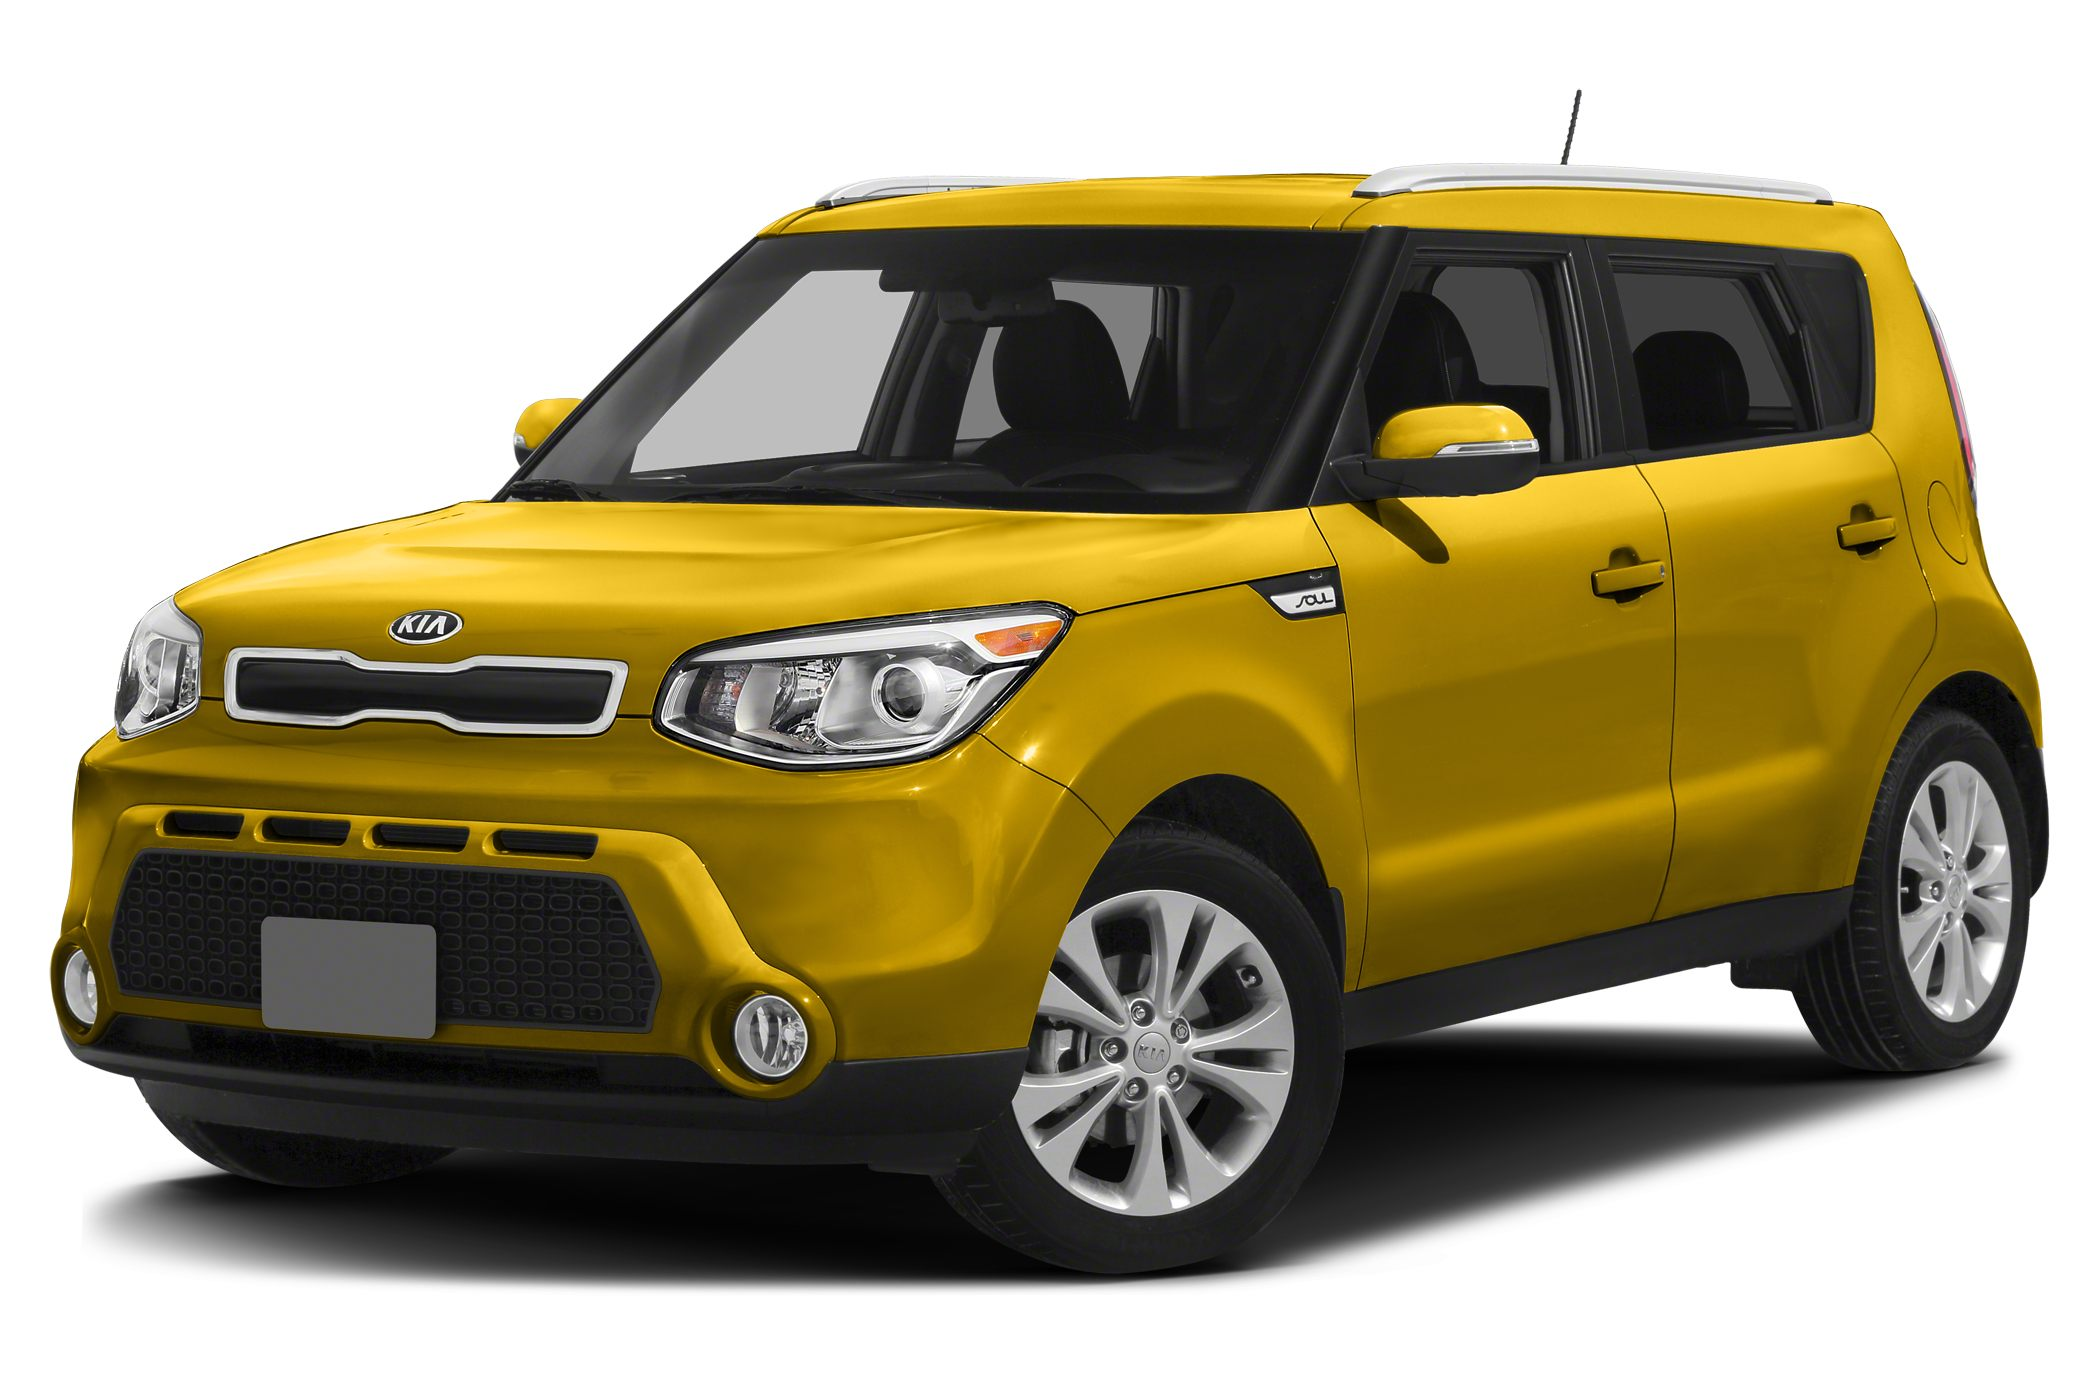 2014 Kia Soul Base 4D Hatchback 16L I4 DGI Gamma 6-Speed Automatic FWD Black and Black wUpg